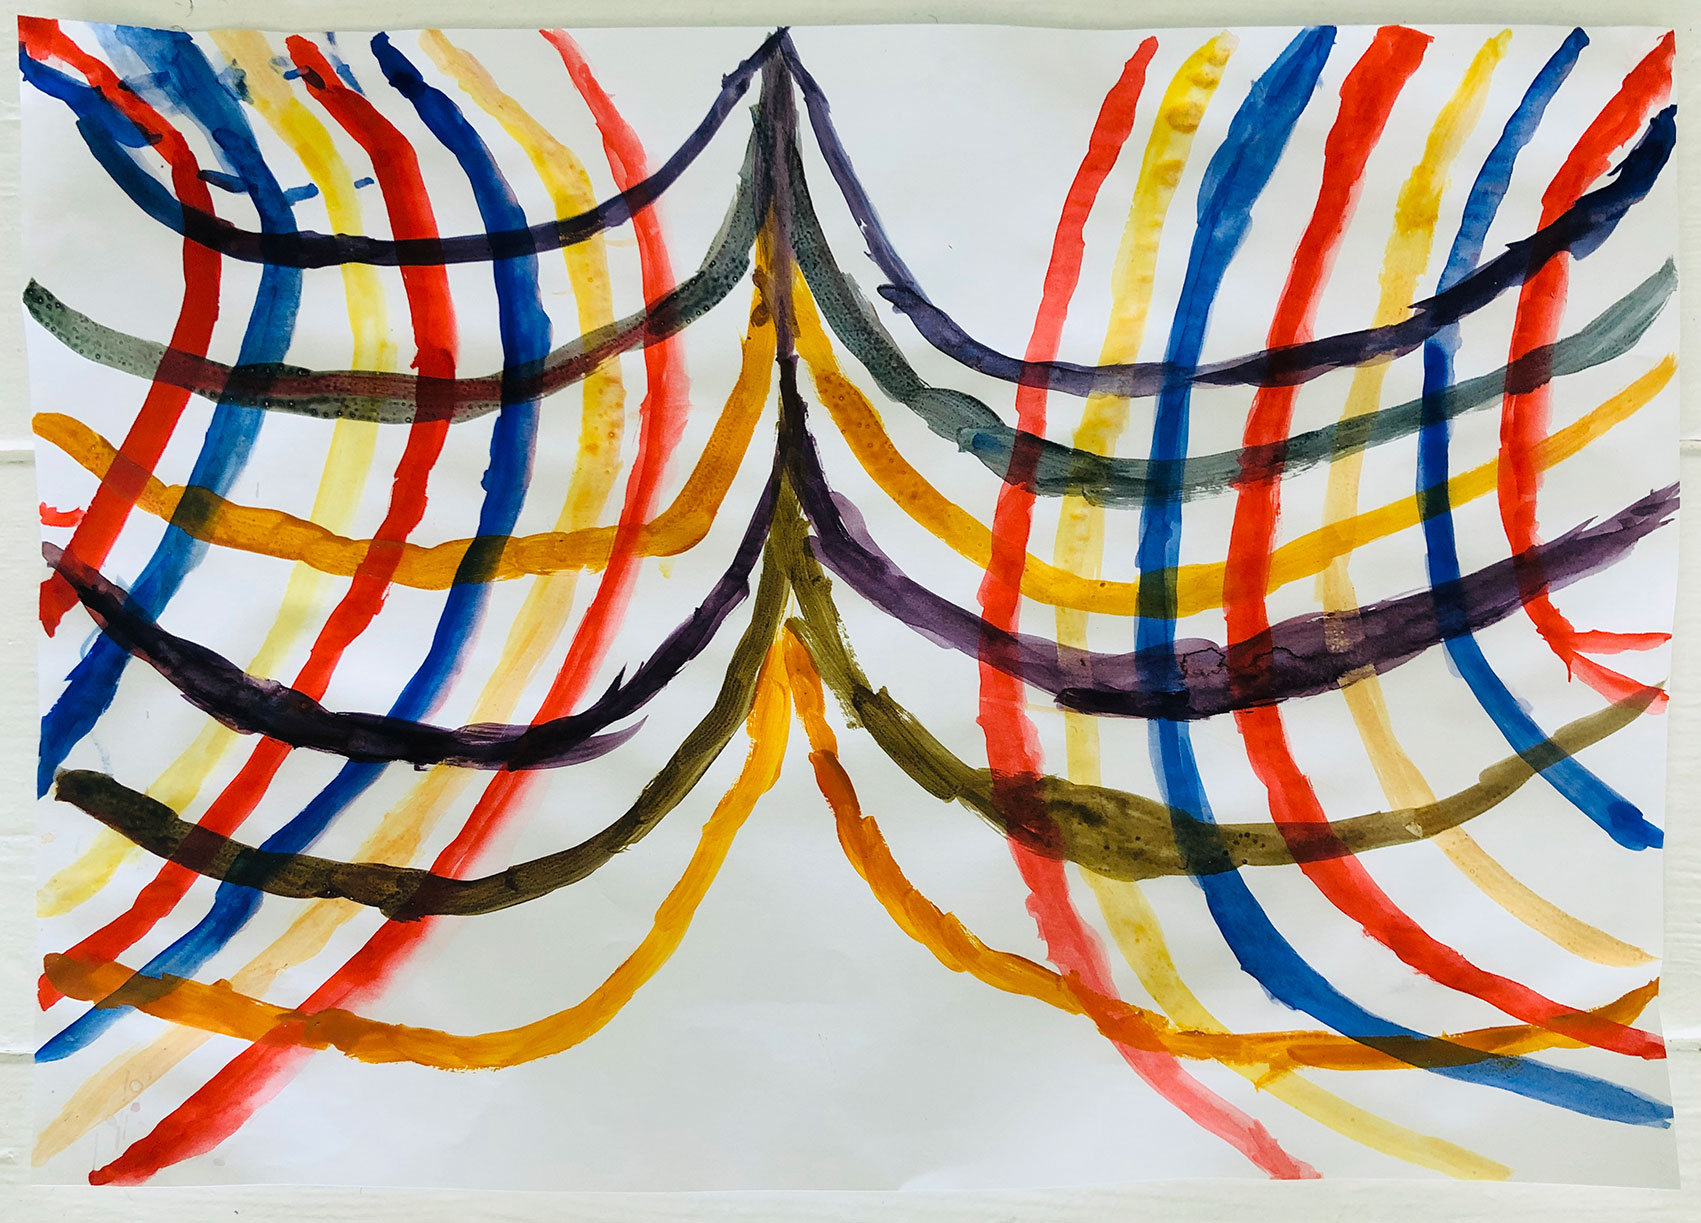 Abstract criss-cross lines in red, yellow and blue